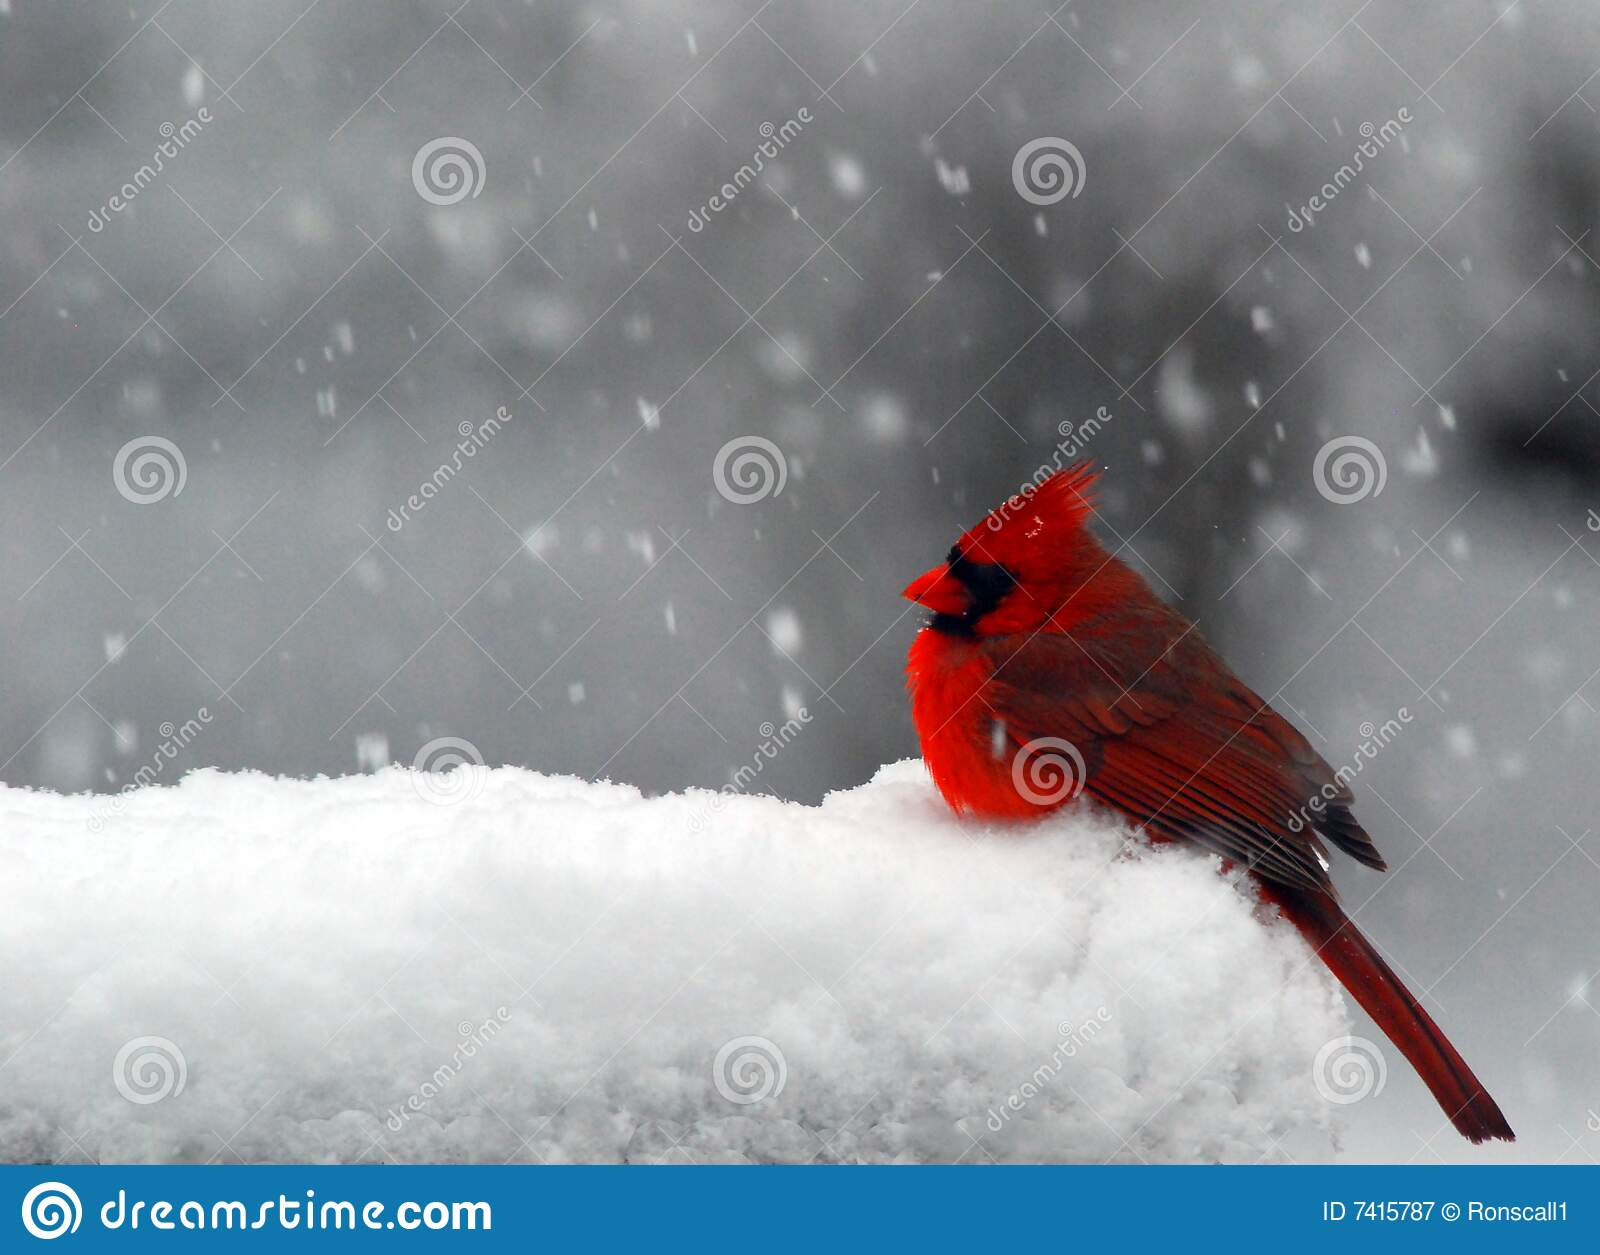 Free 3d Snow Falling Wallpaper Cardinal In Snow Royalty Free Stock Photography Image